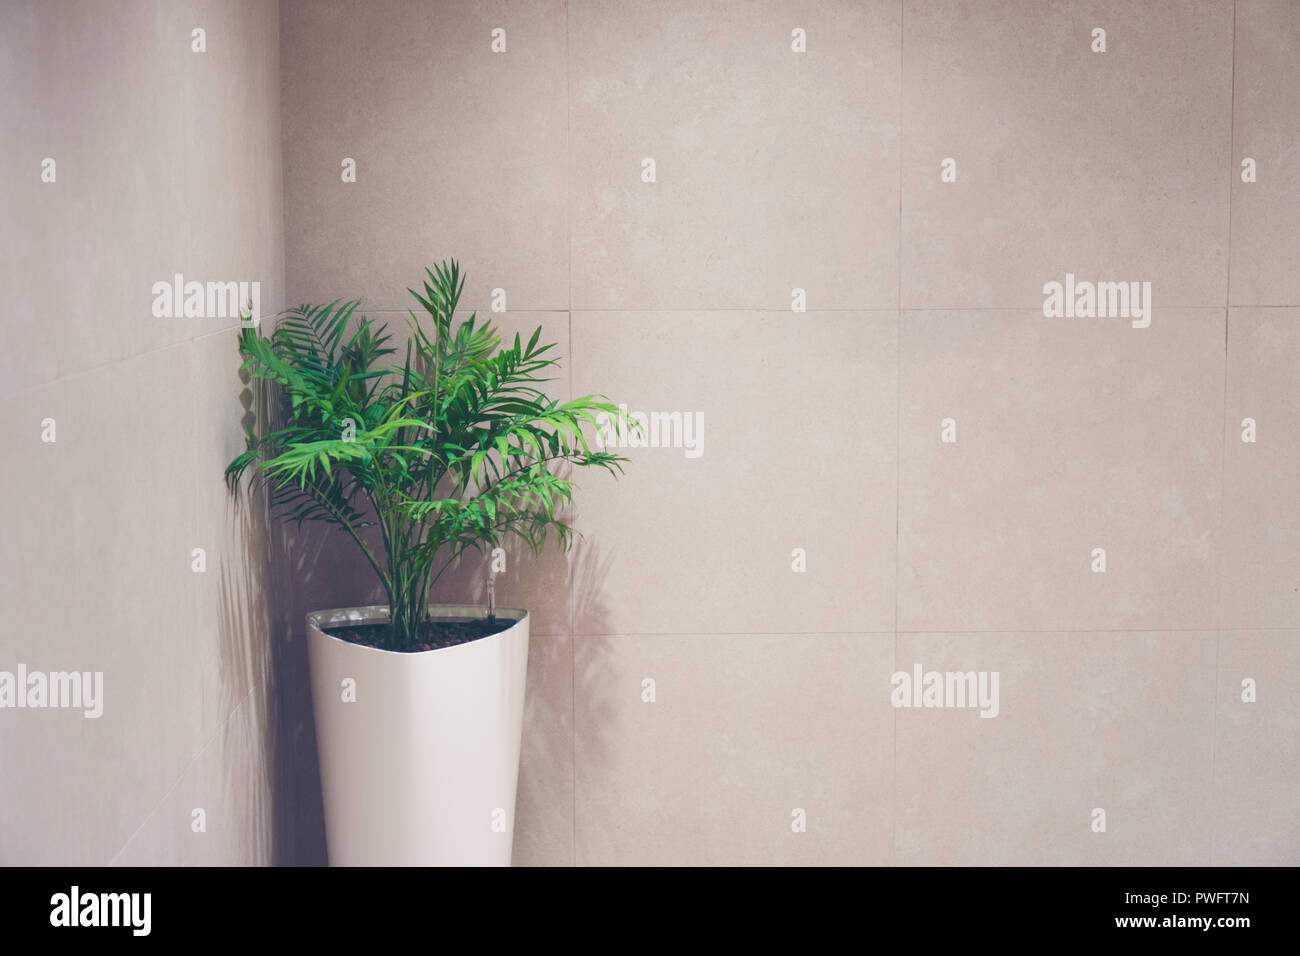 green Shrub tree with space - Stock Image